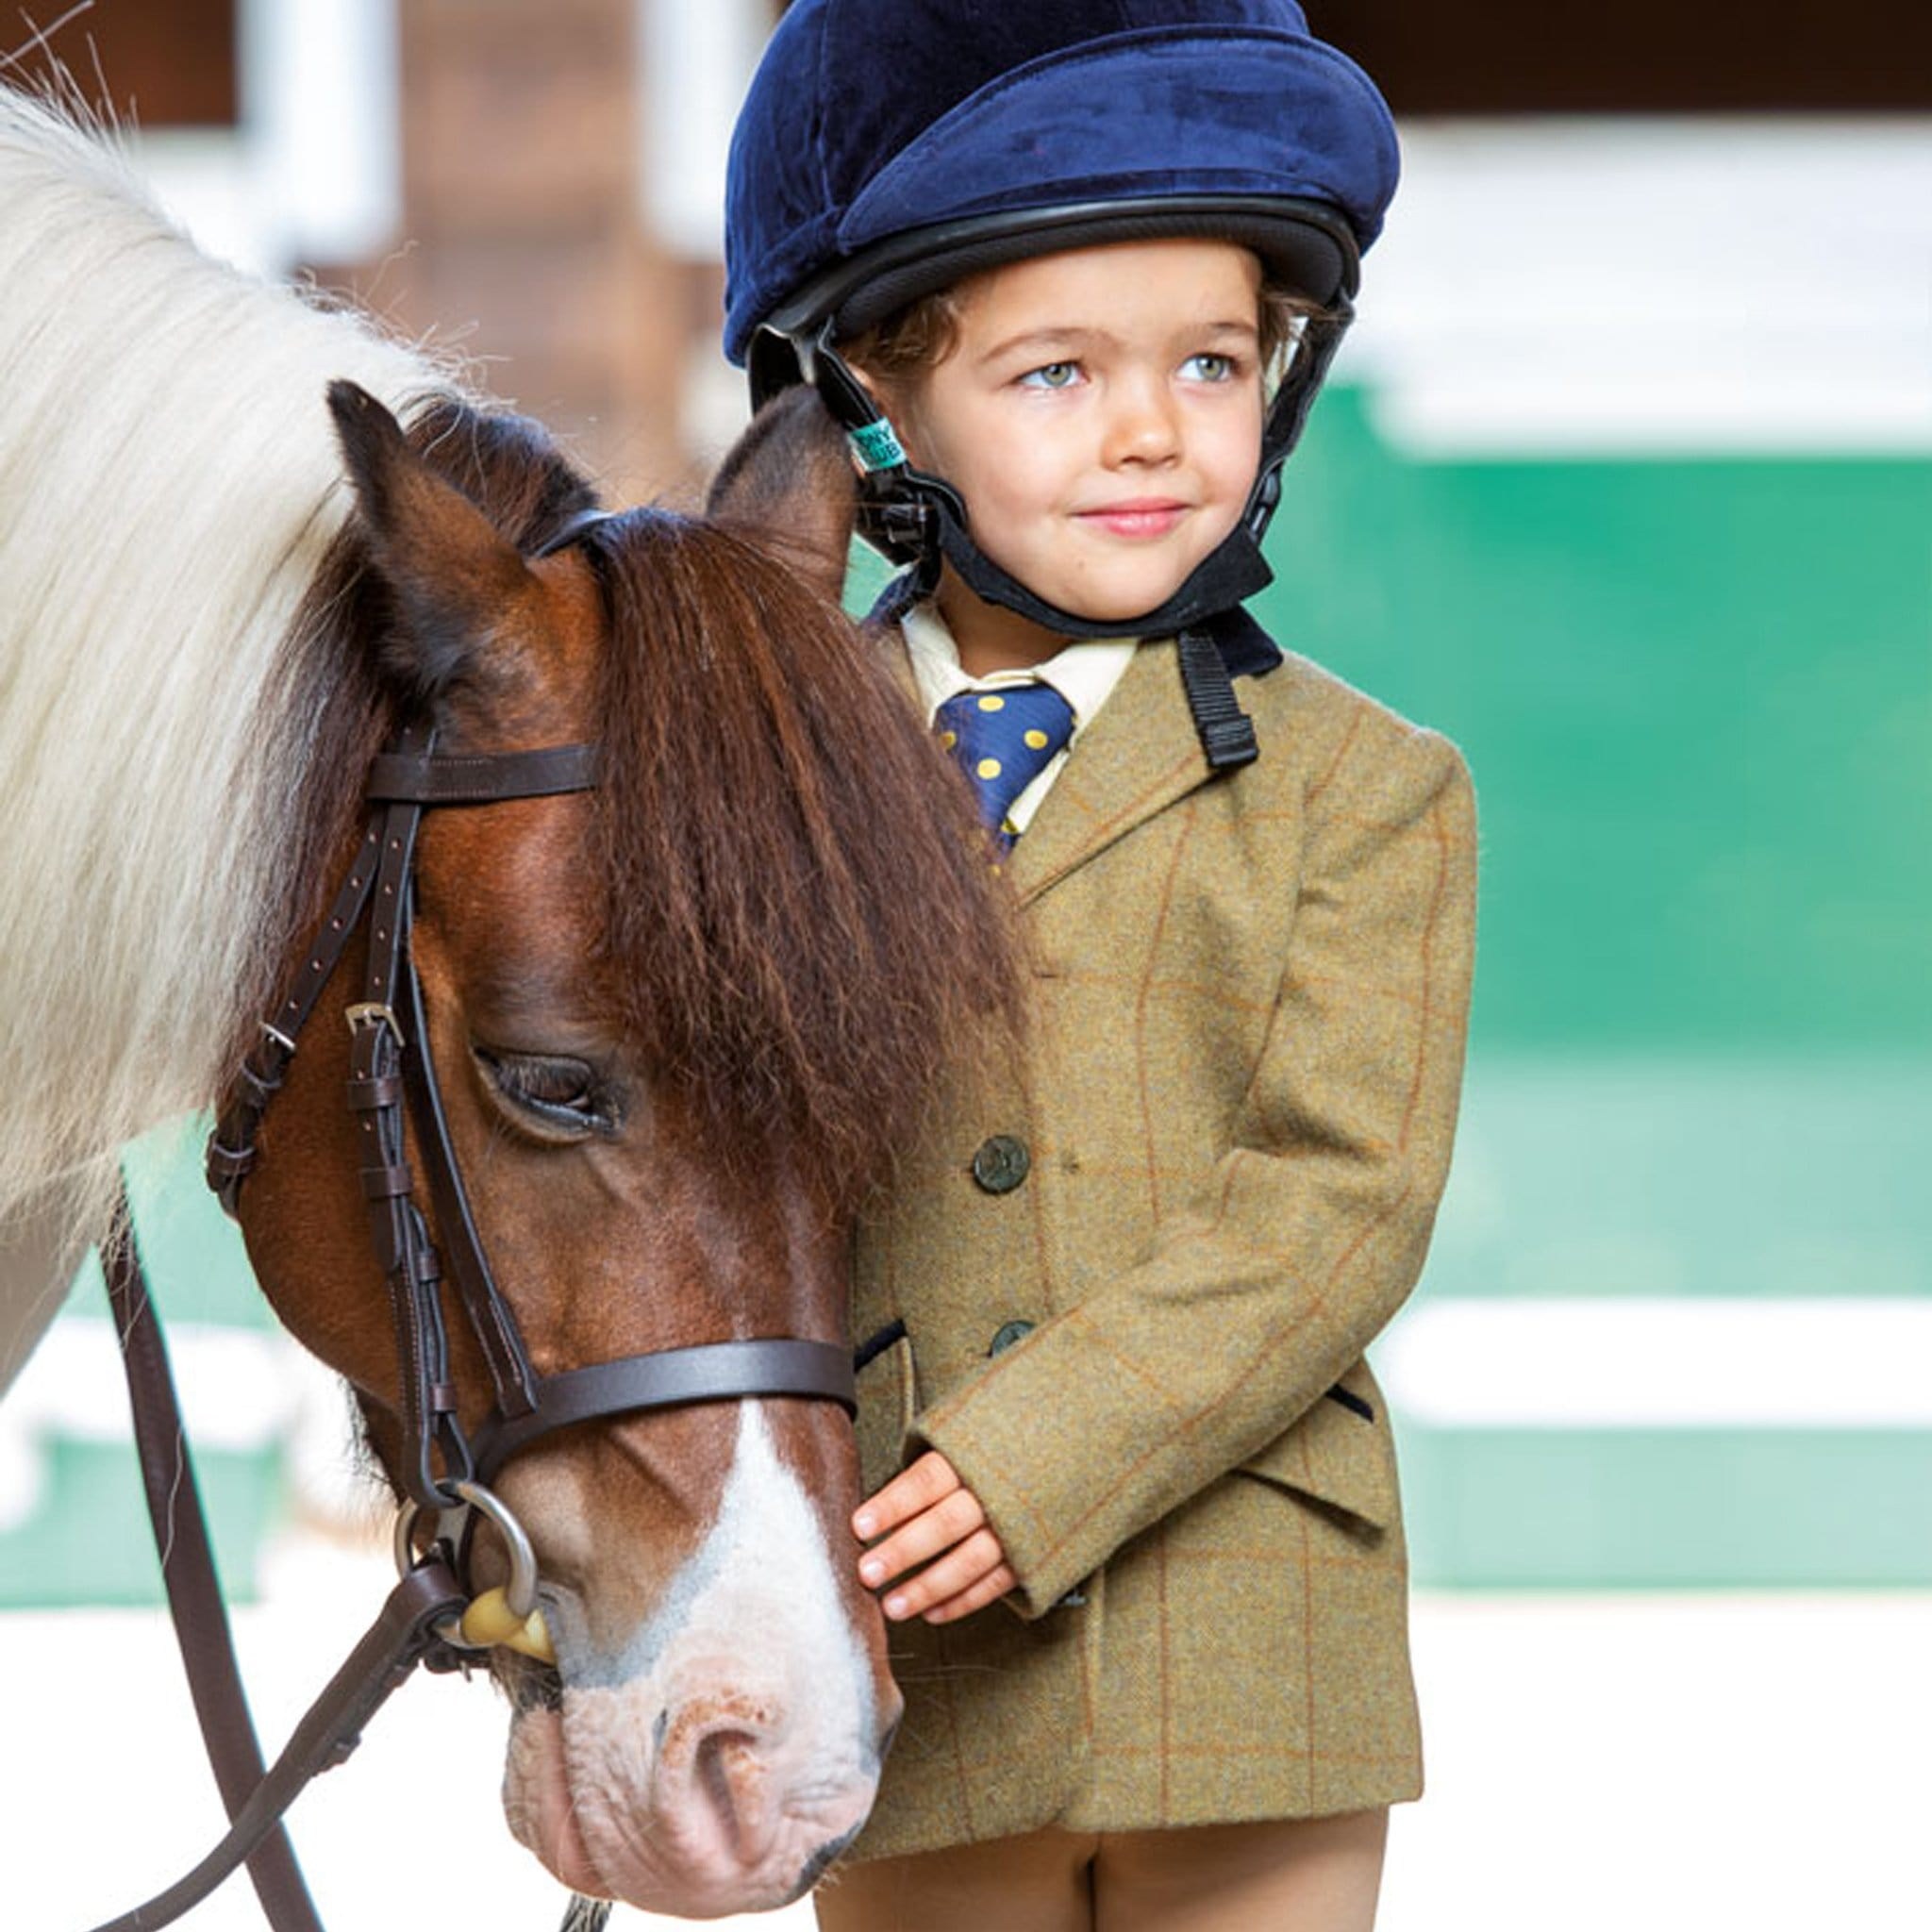 Shires Aubrion Children's Saratoga Jacket 9786 Copper Check On Child With Pony